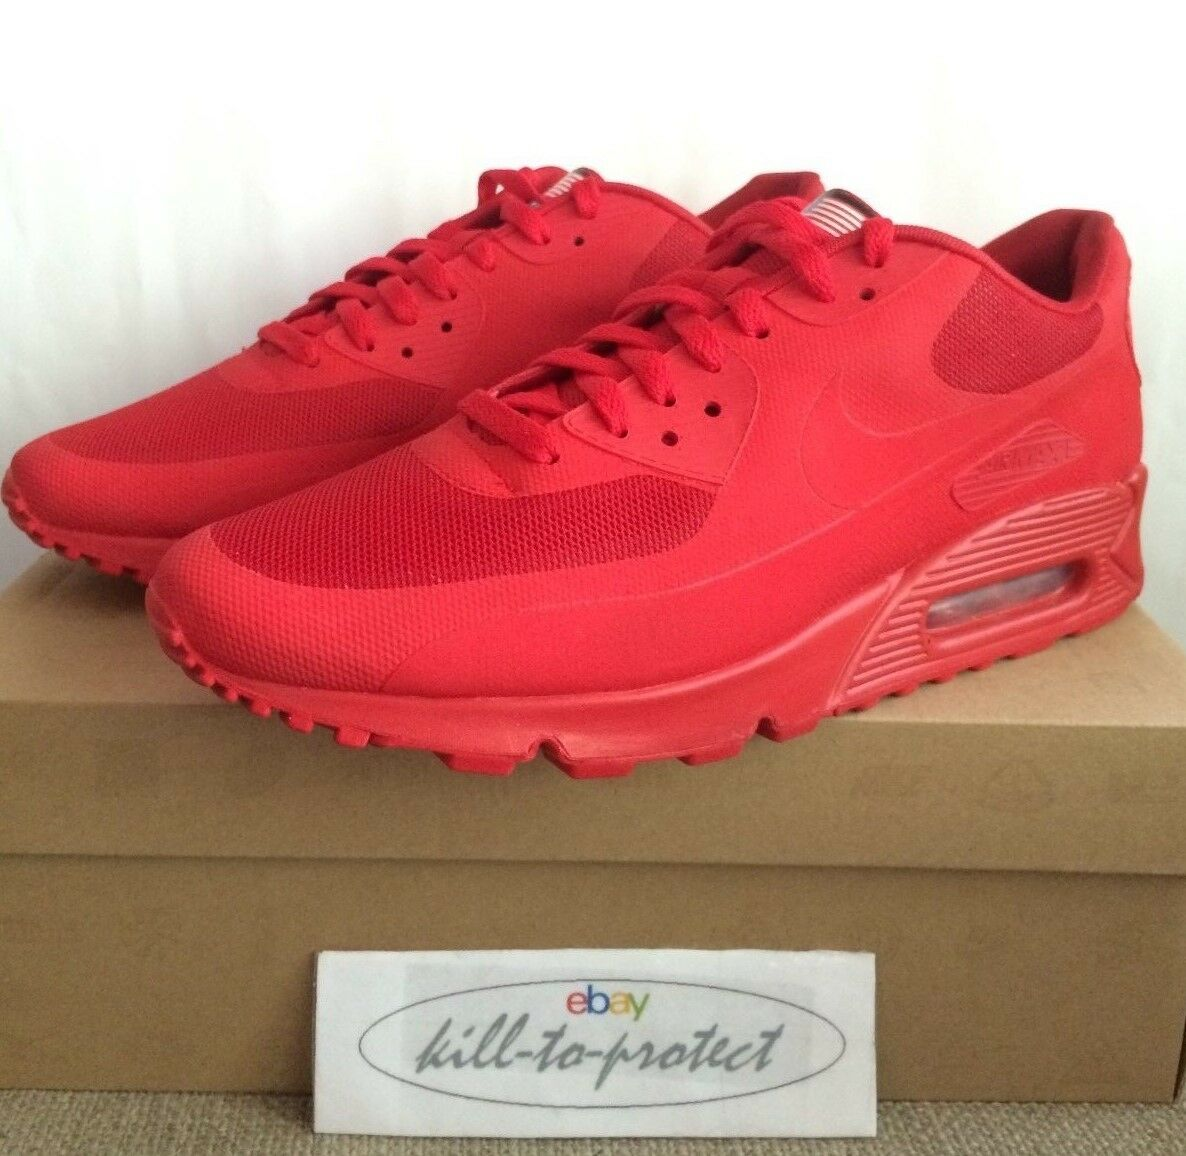 NIKE AIR MAX 90 HYPERFUSE USA Rosso noi UK7 8 9 10 11 12 indipendenza 613841-660